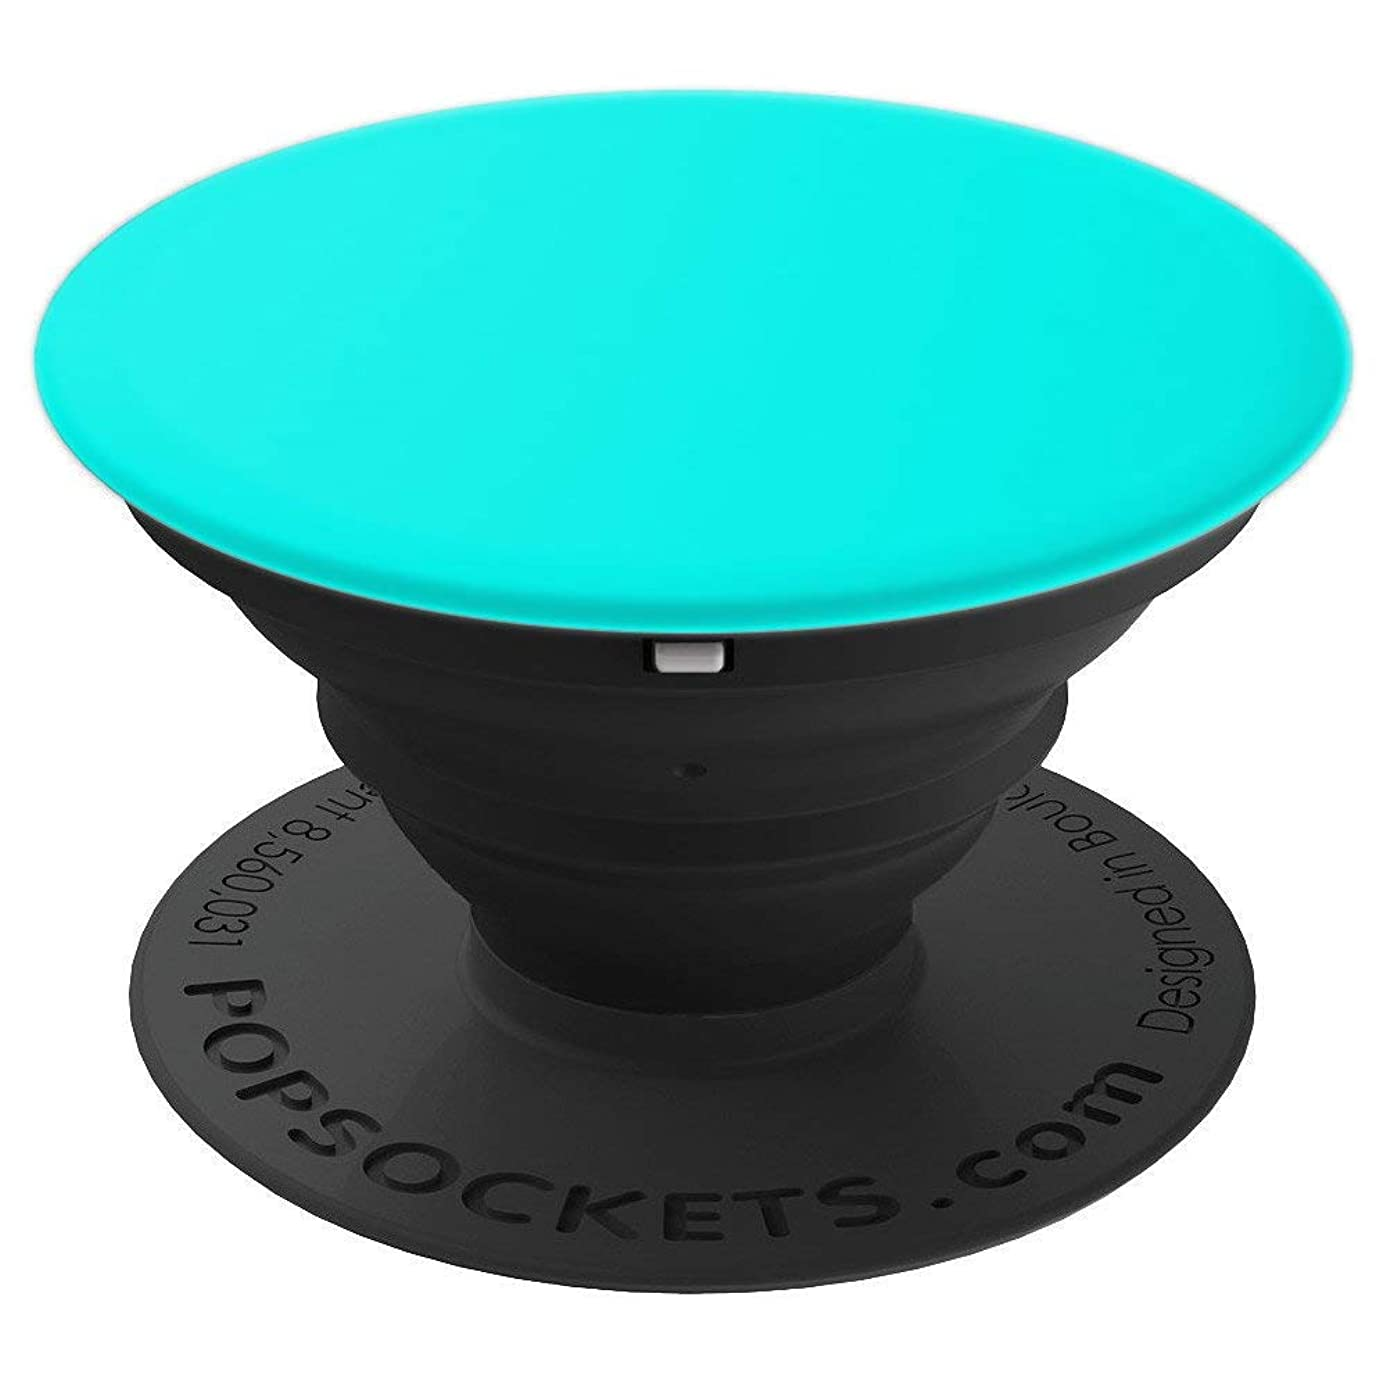 Teal Blue Solid Color Bright Turquoise Ocean Wave Green Tea - PopSockets Grip and Stand for Phones and Tablets